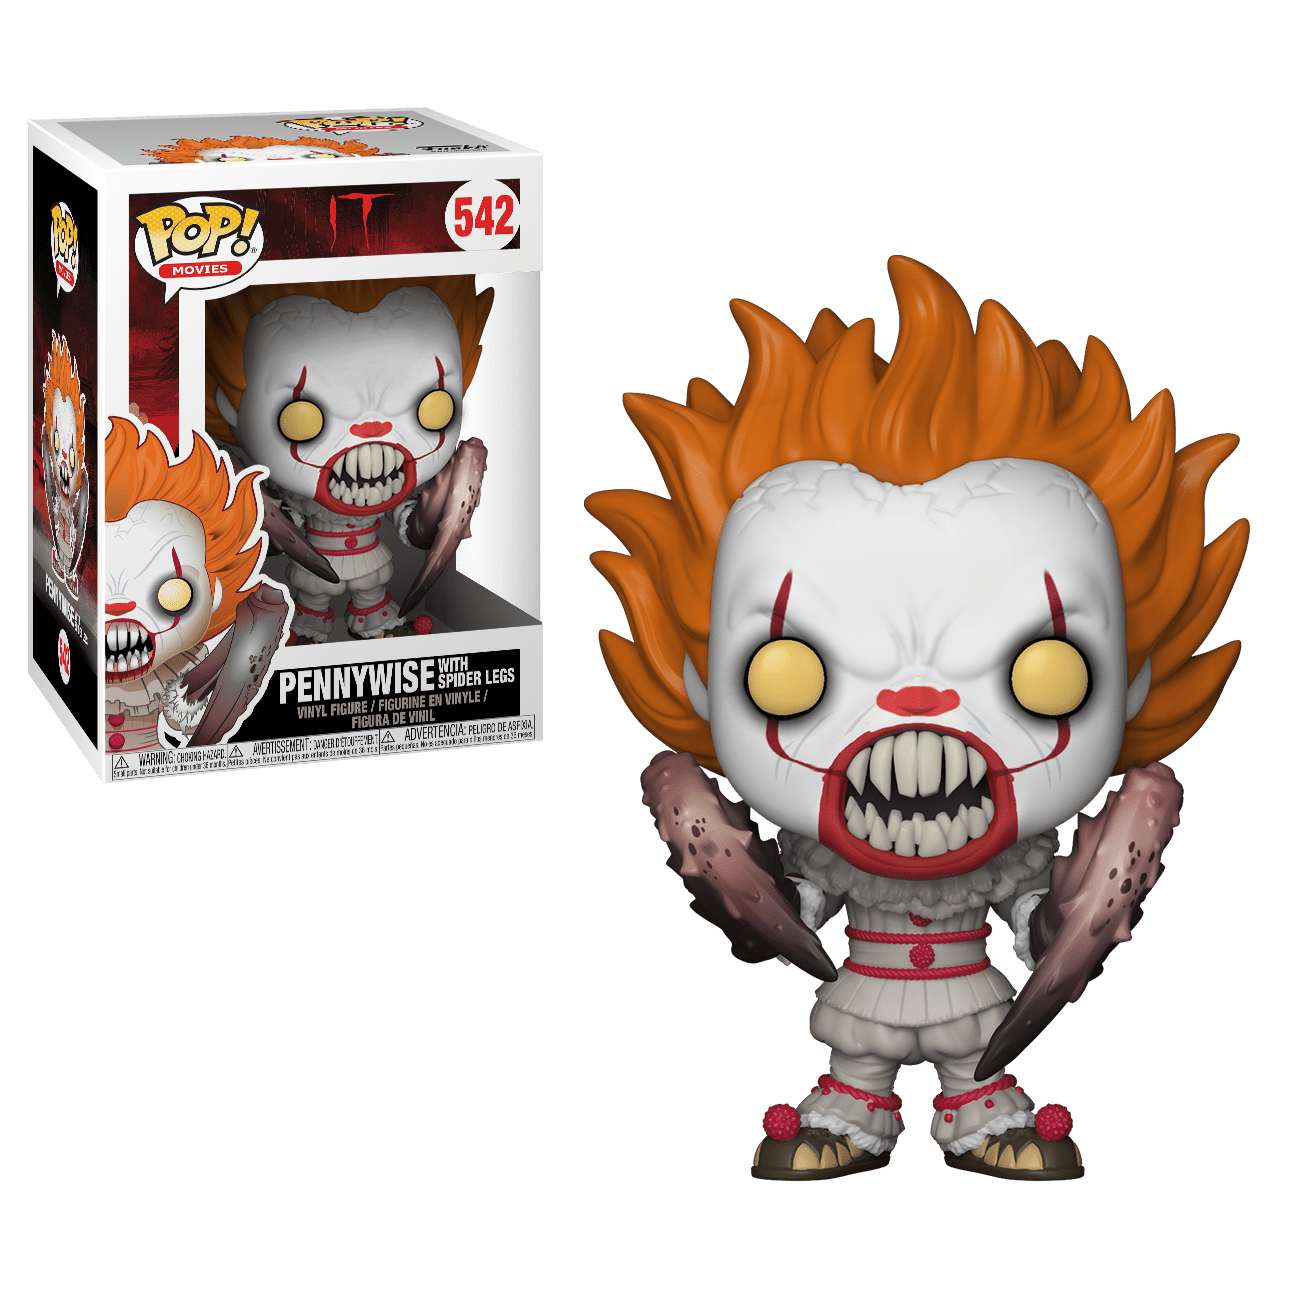 It Movie Pennywise (with Spider Legs) Pop